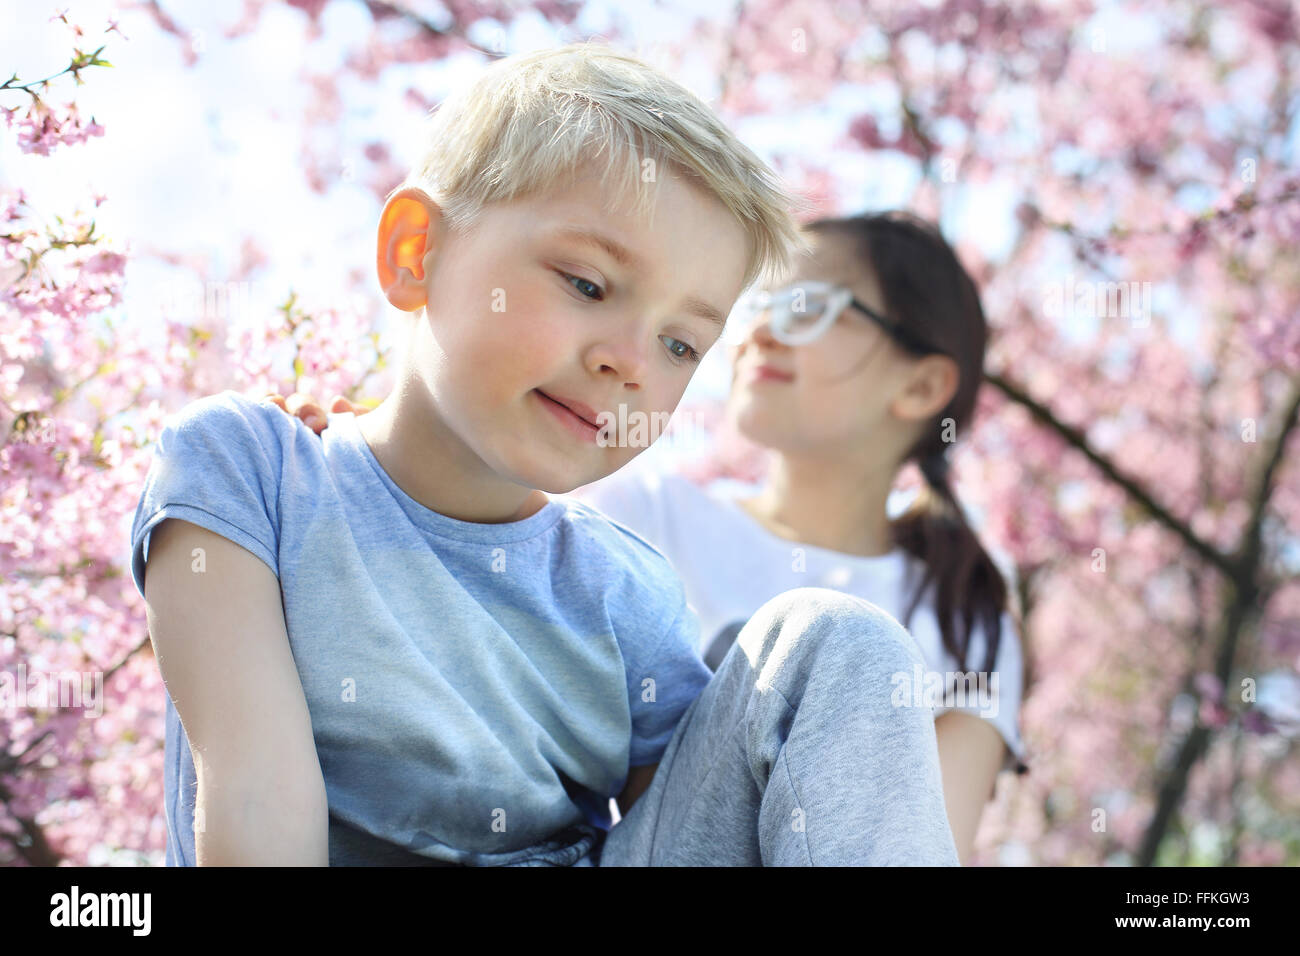 Siblings. Happy child. Boy sitting under a tree, the girl in the background - Stock Image